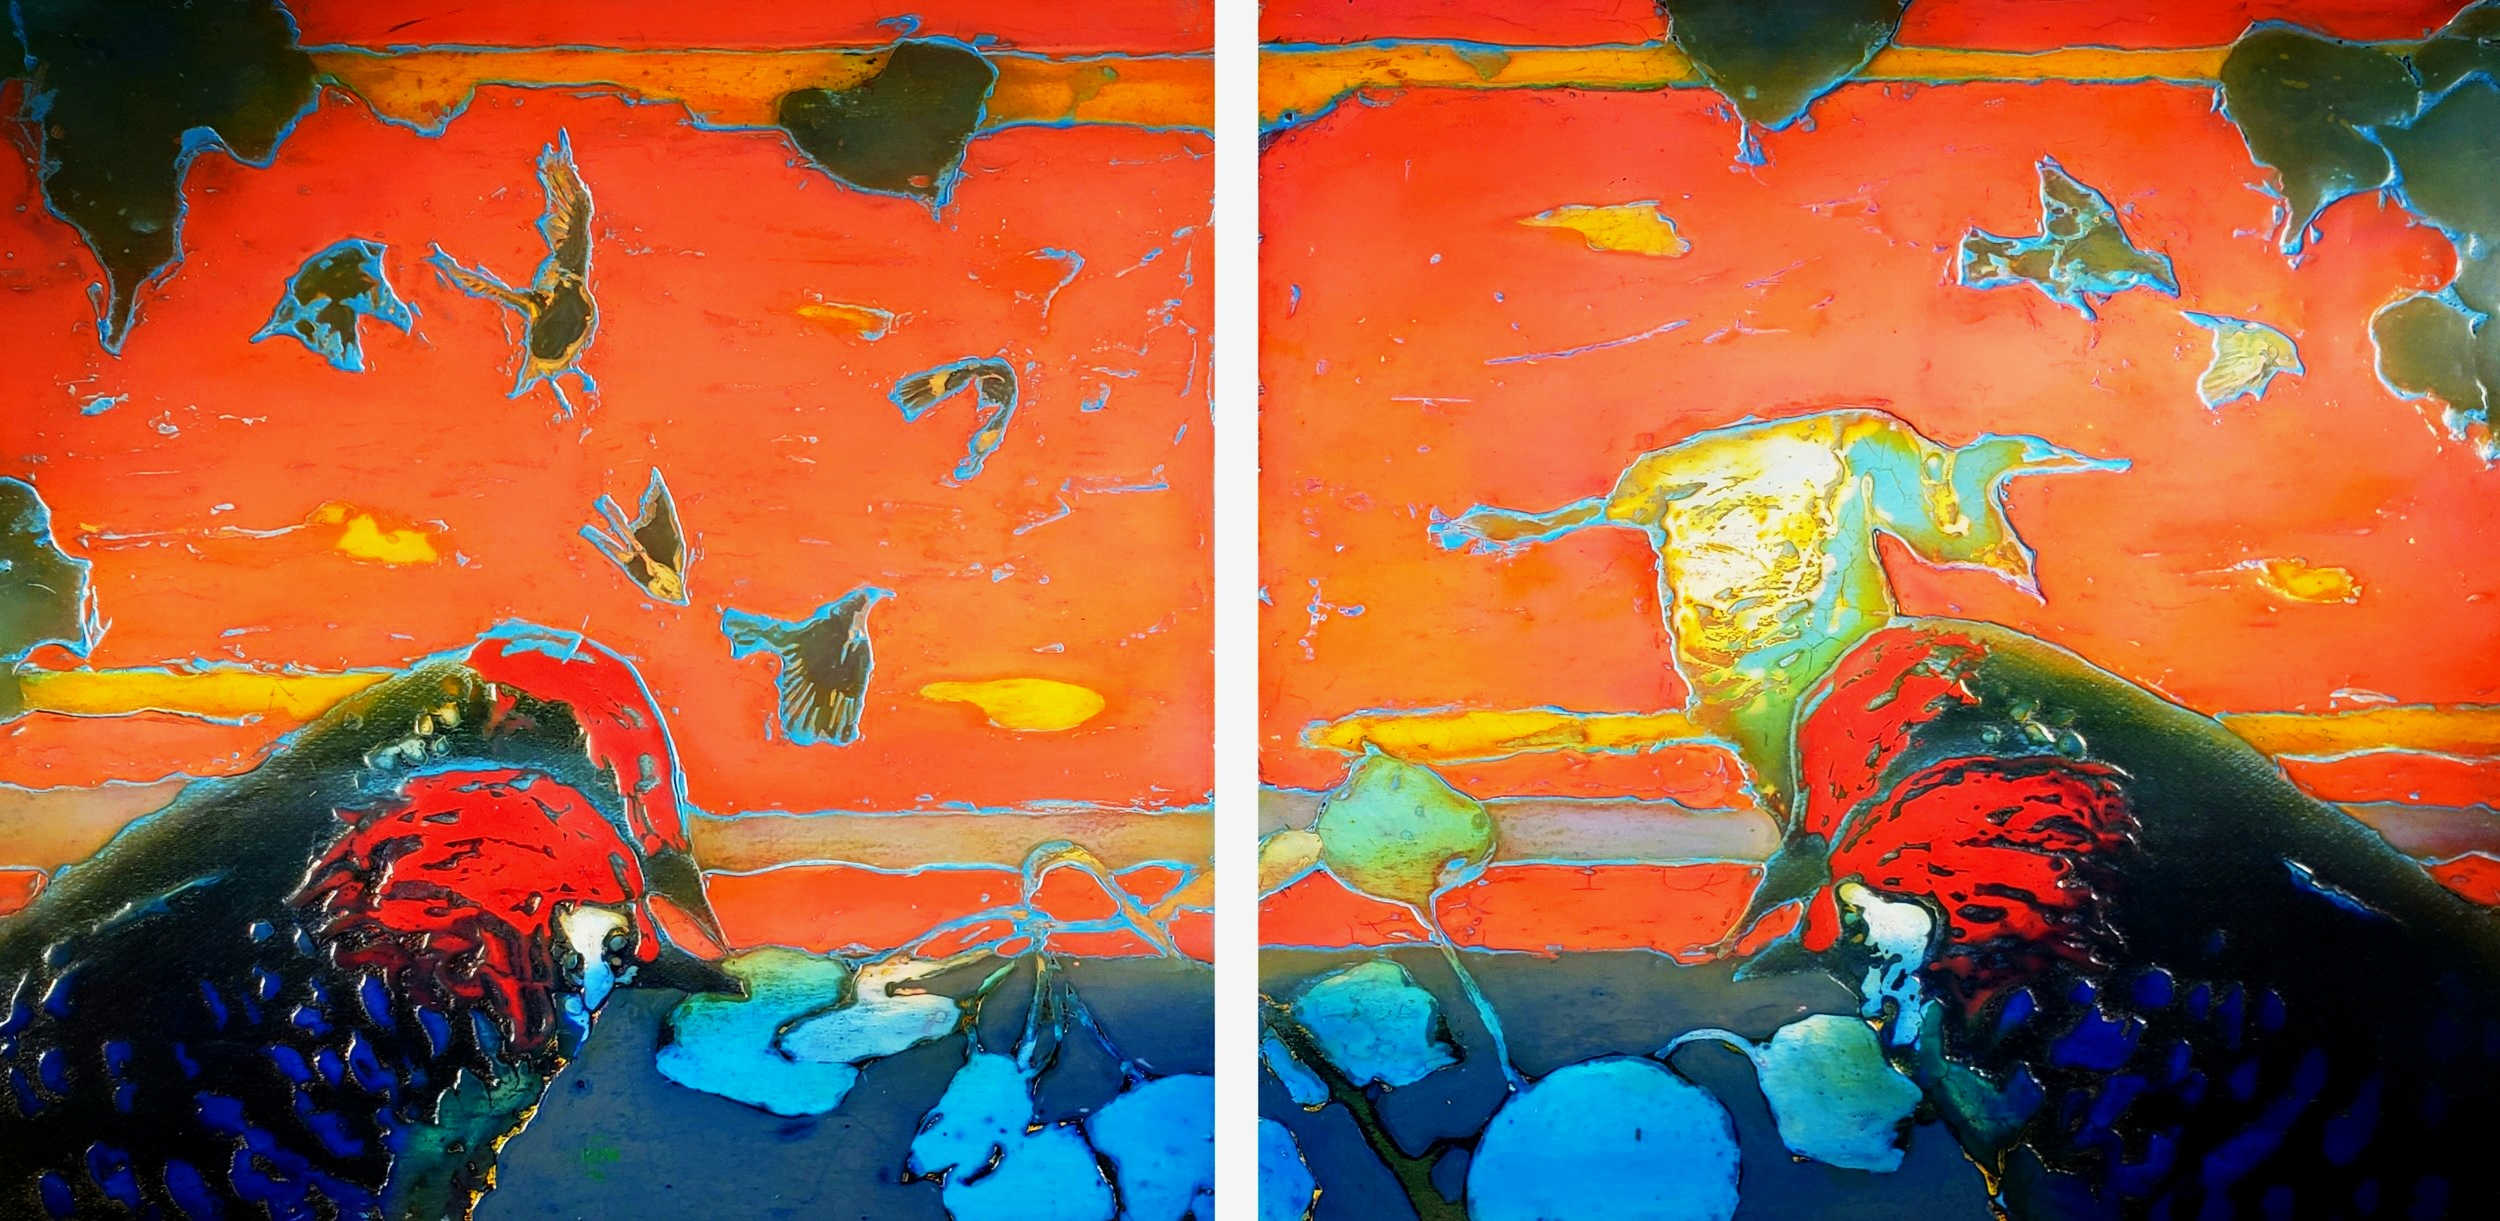 "332 Dawn and Dusk 49"" x 23.5"" Oil on wood panel $4,600."